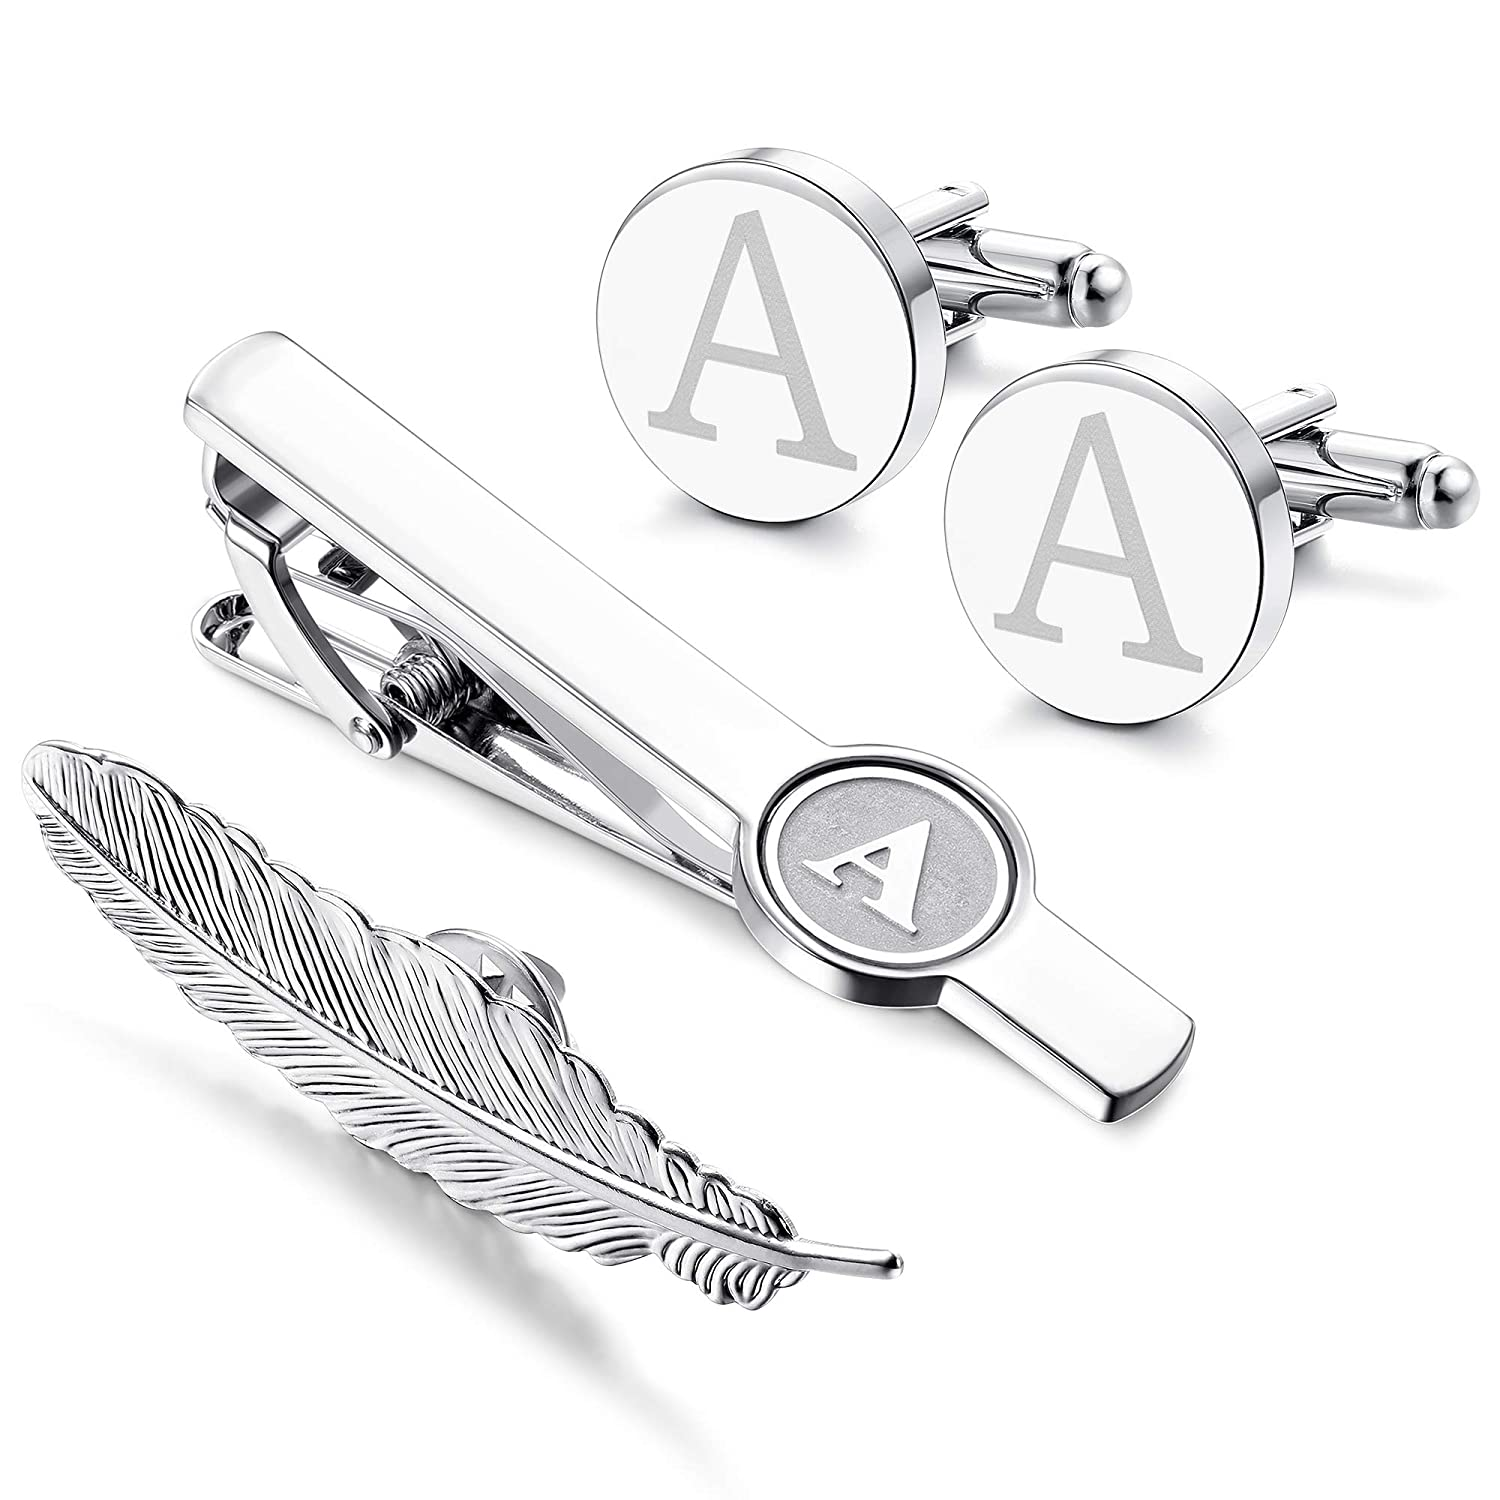 LOYALLOOK Initial Cufflinks and Tie Clip for Men Women Engraved Shirt  Cufflink Alphabet A-Z Tie Bar Set for Business Wedding Gift with Box 76ccacbdf